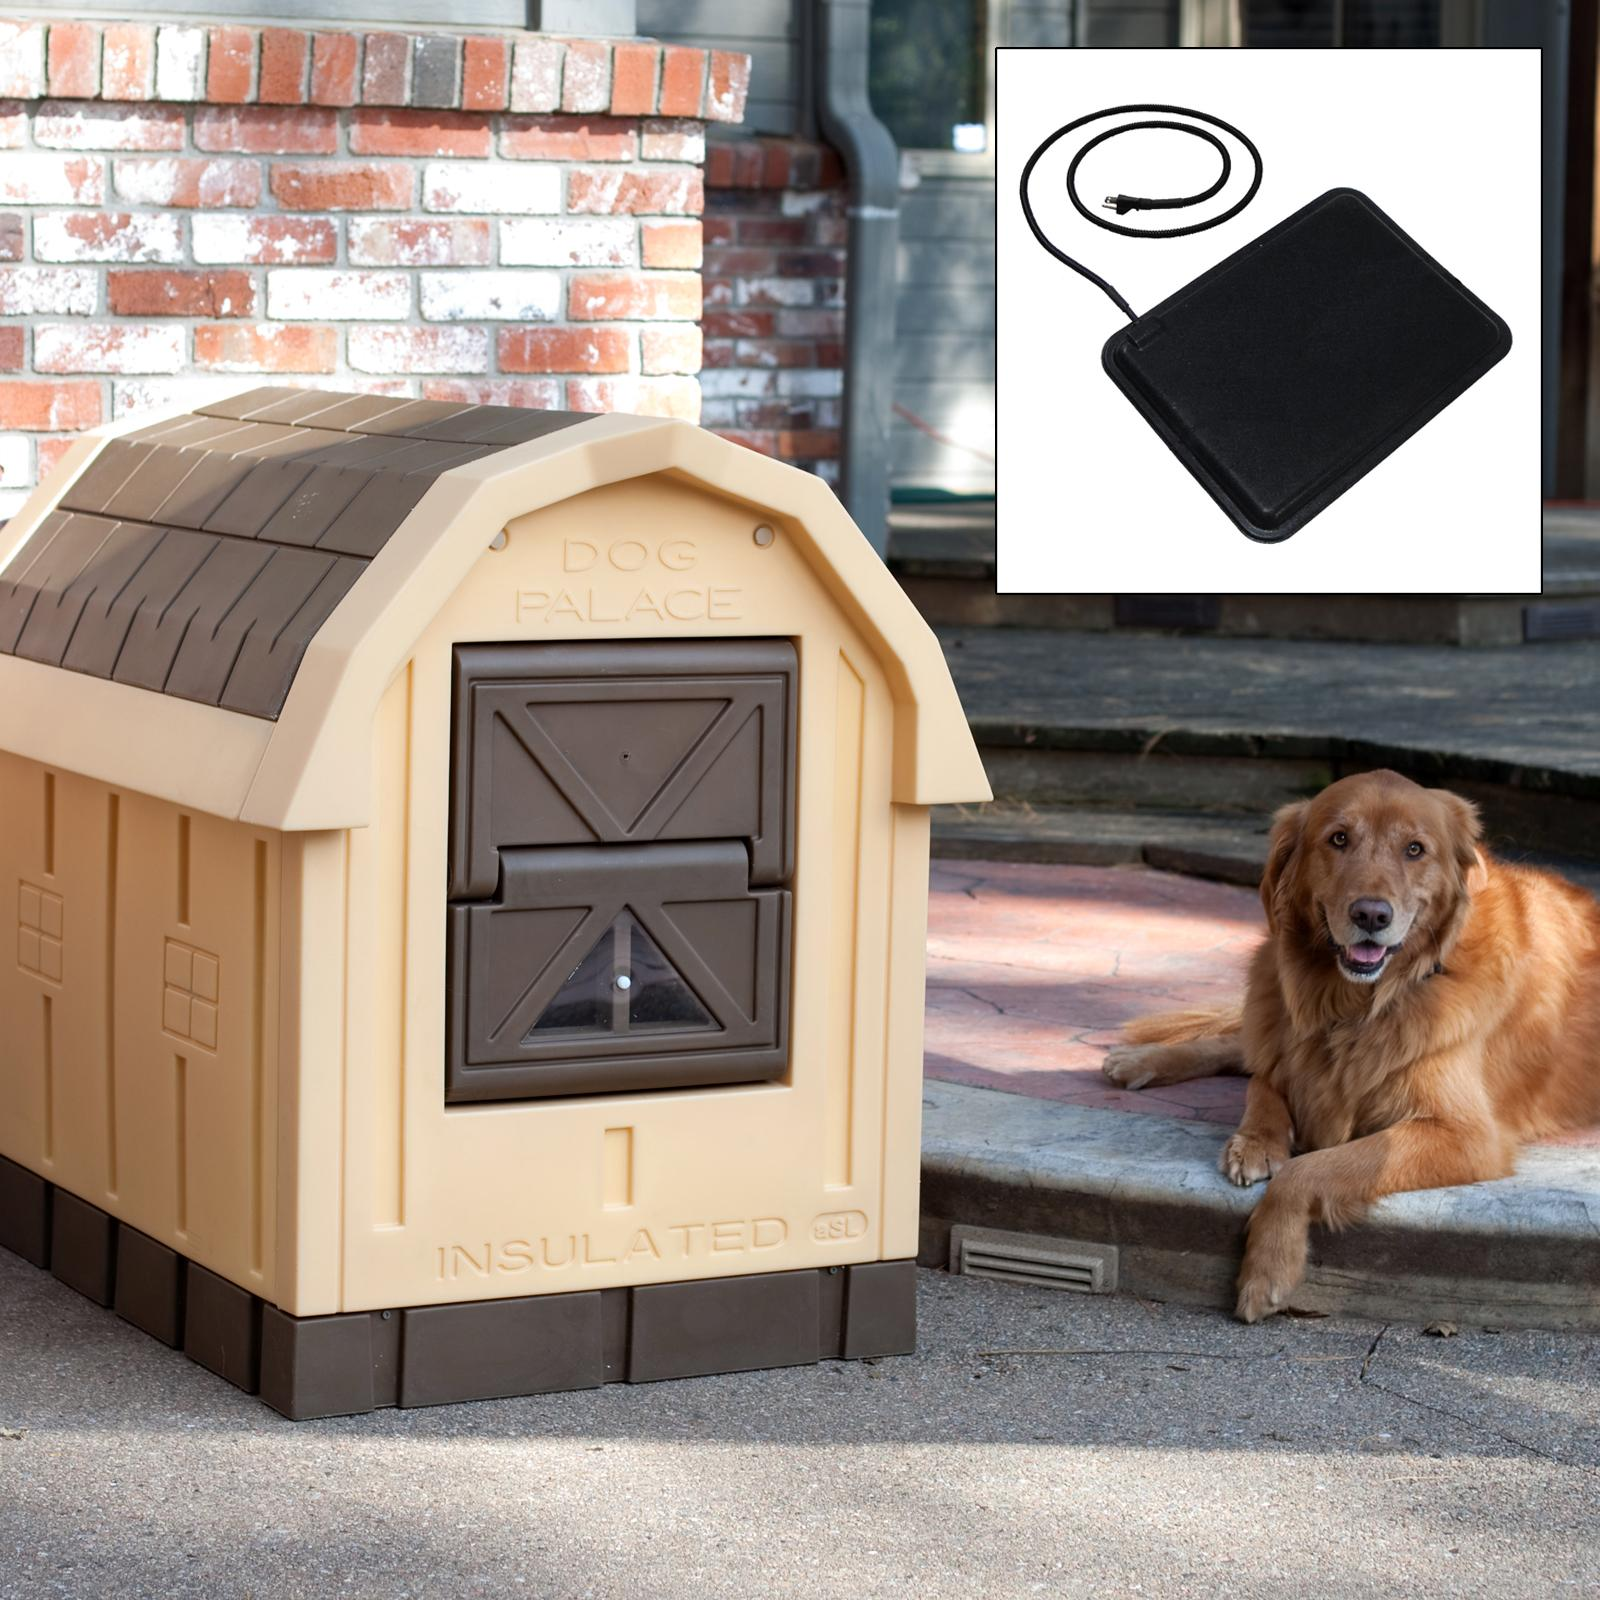 Asl Solution Dog Palace Dog House with Floor Heater - ASL...